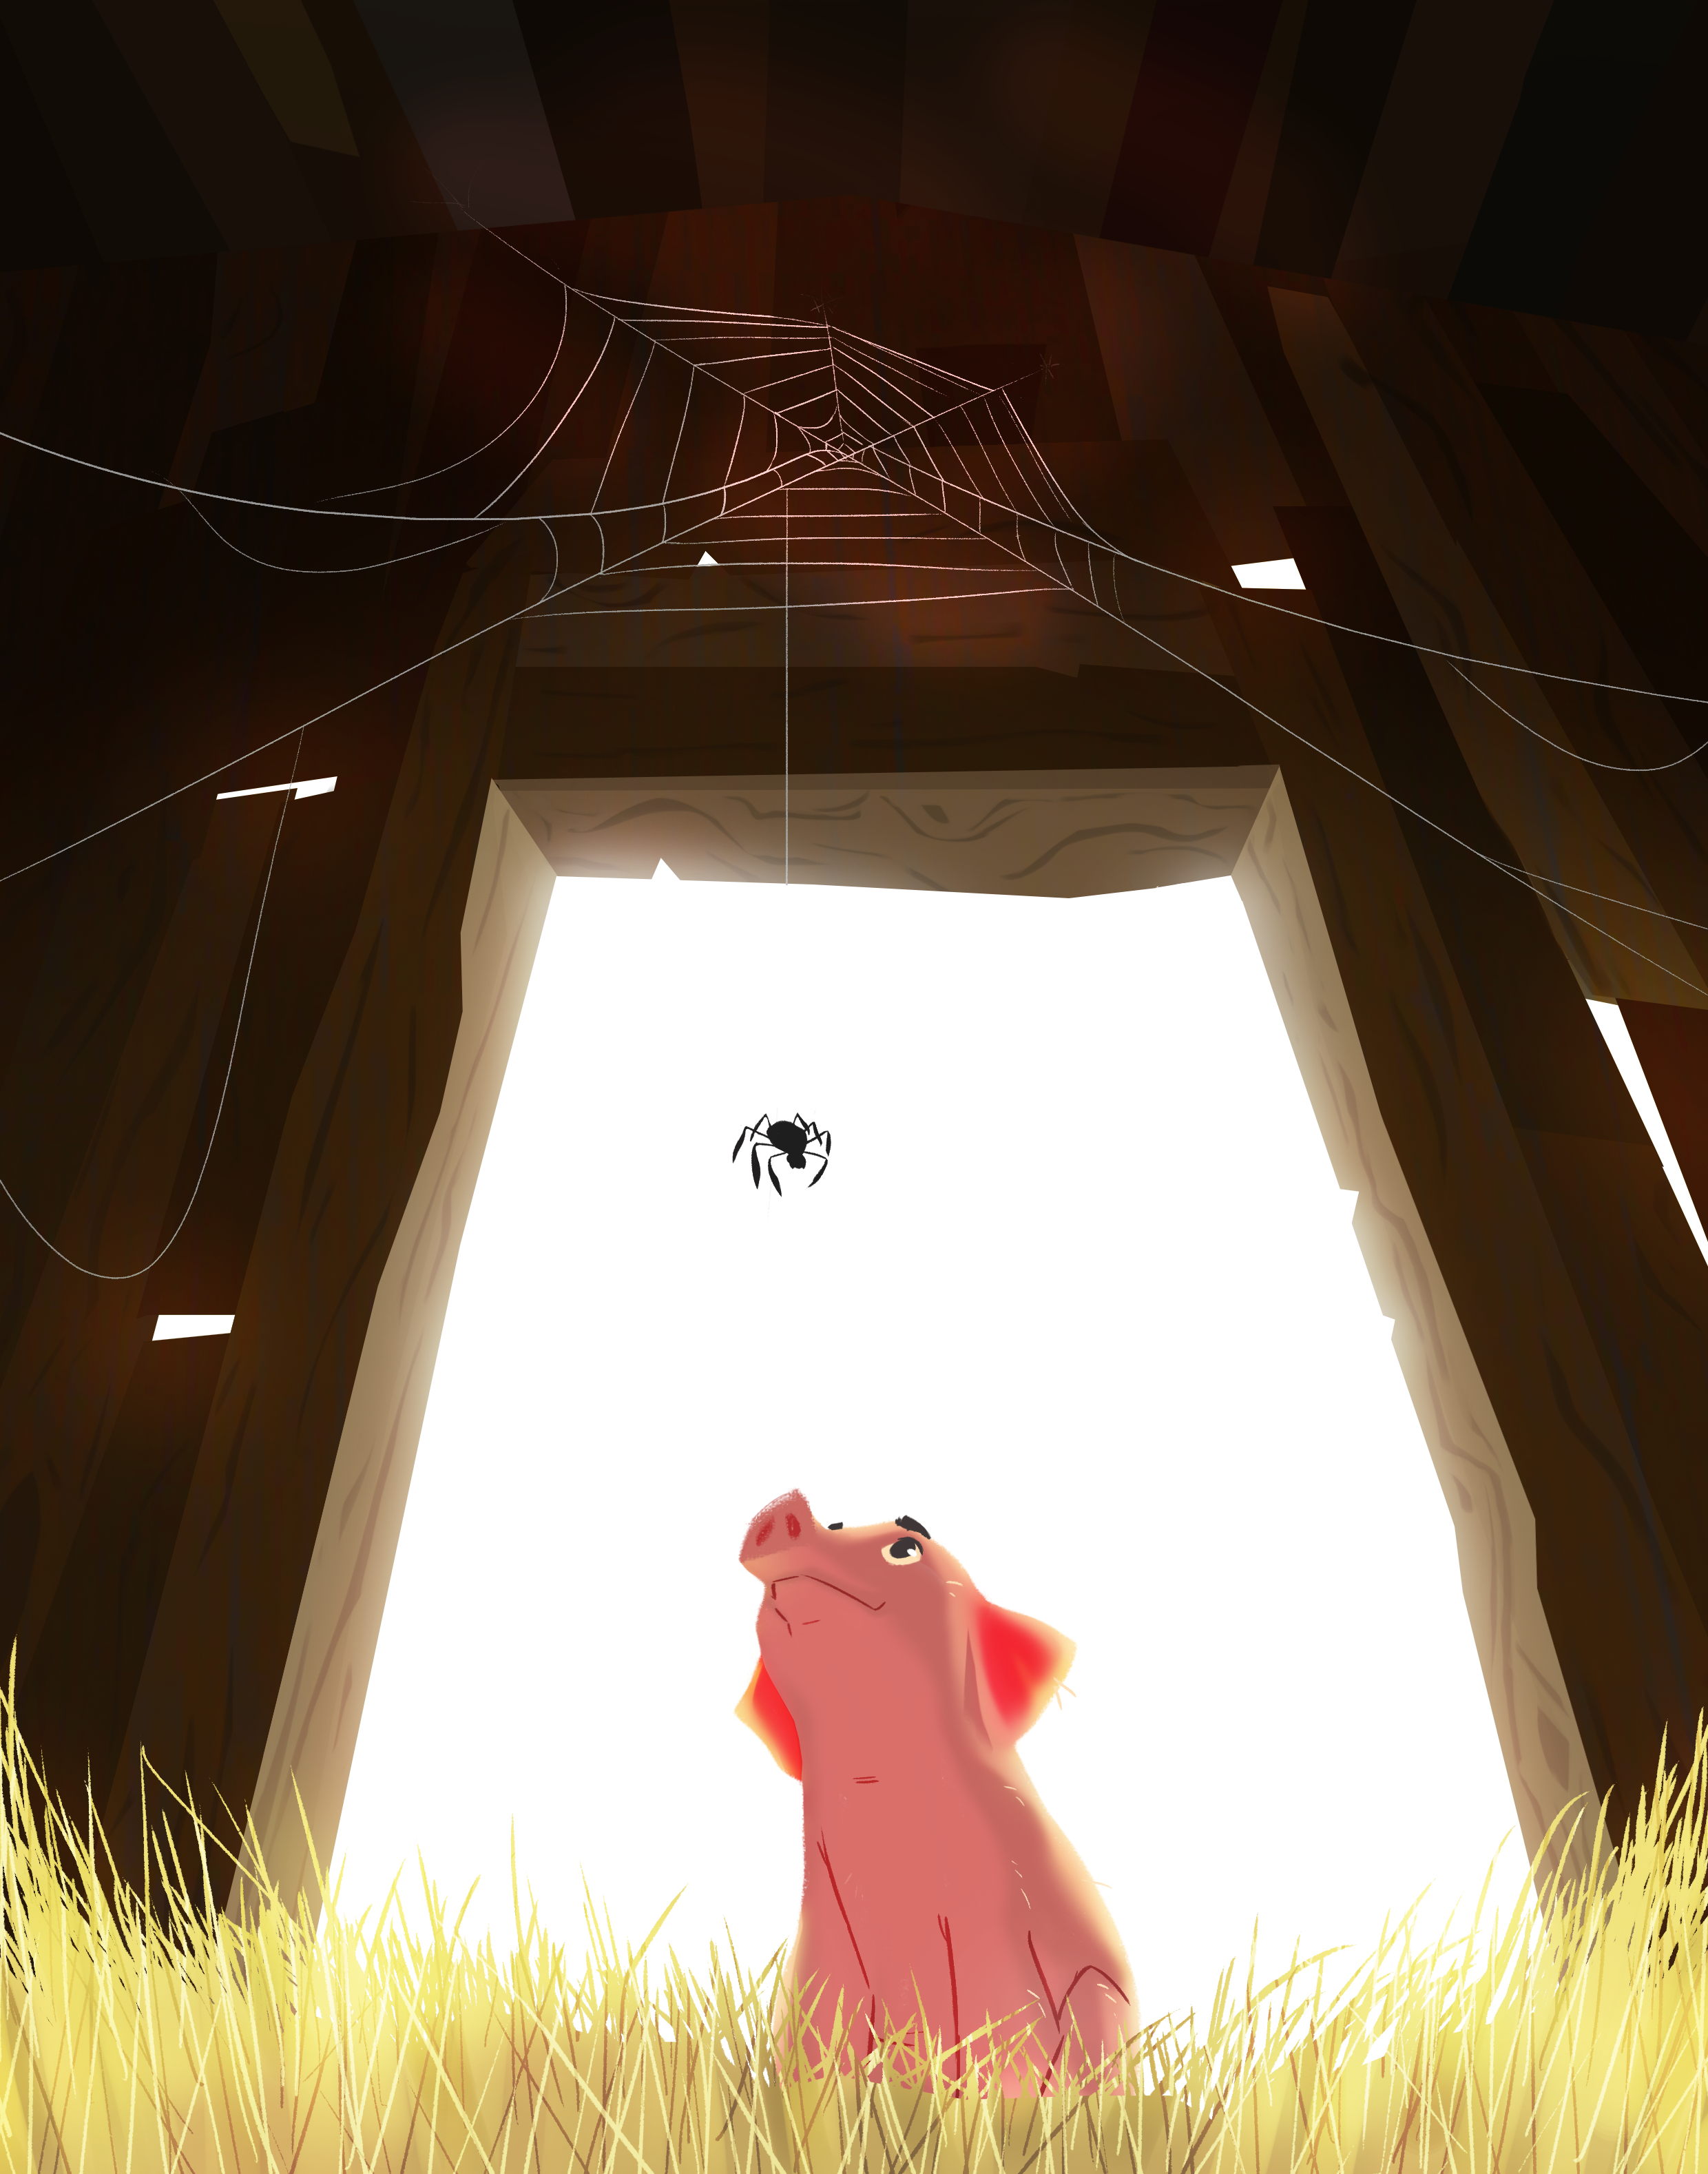 The Charlotte's web